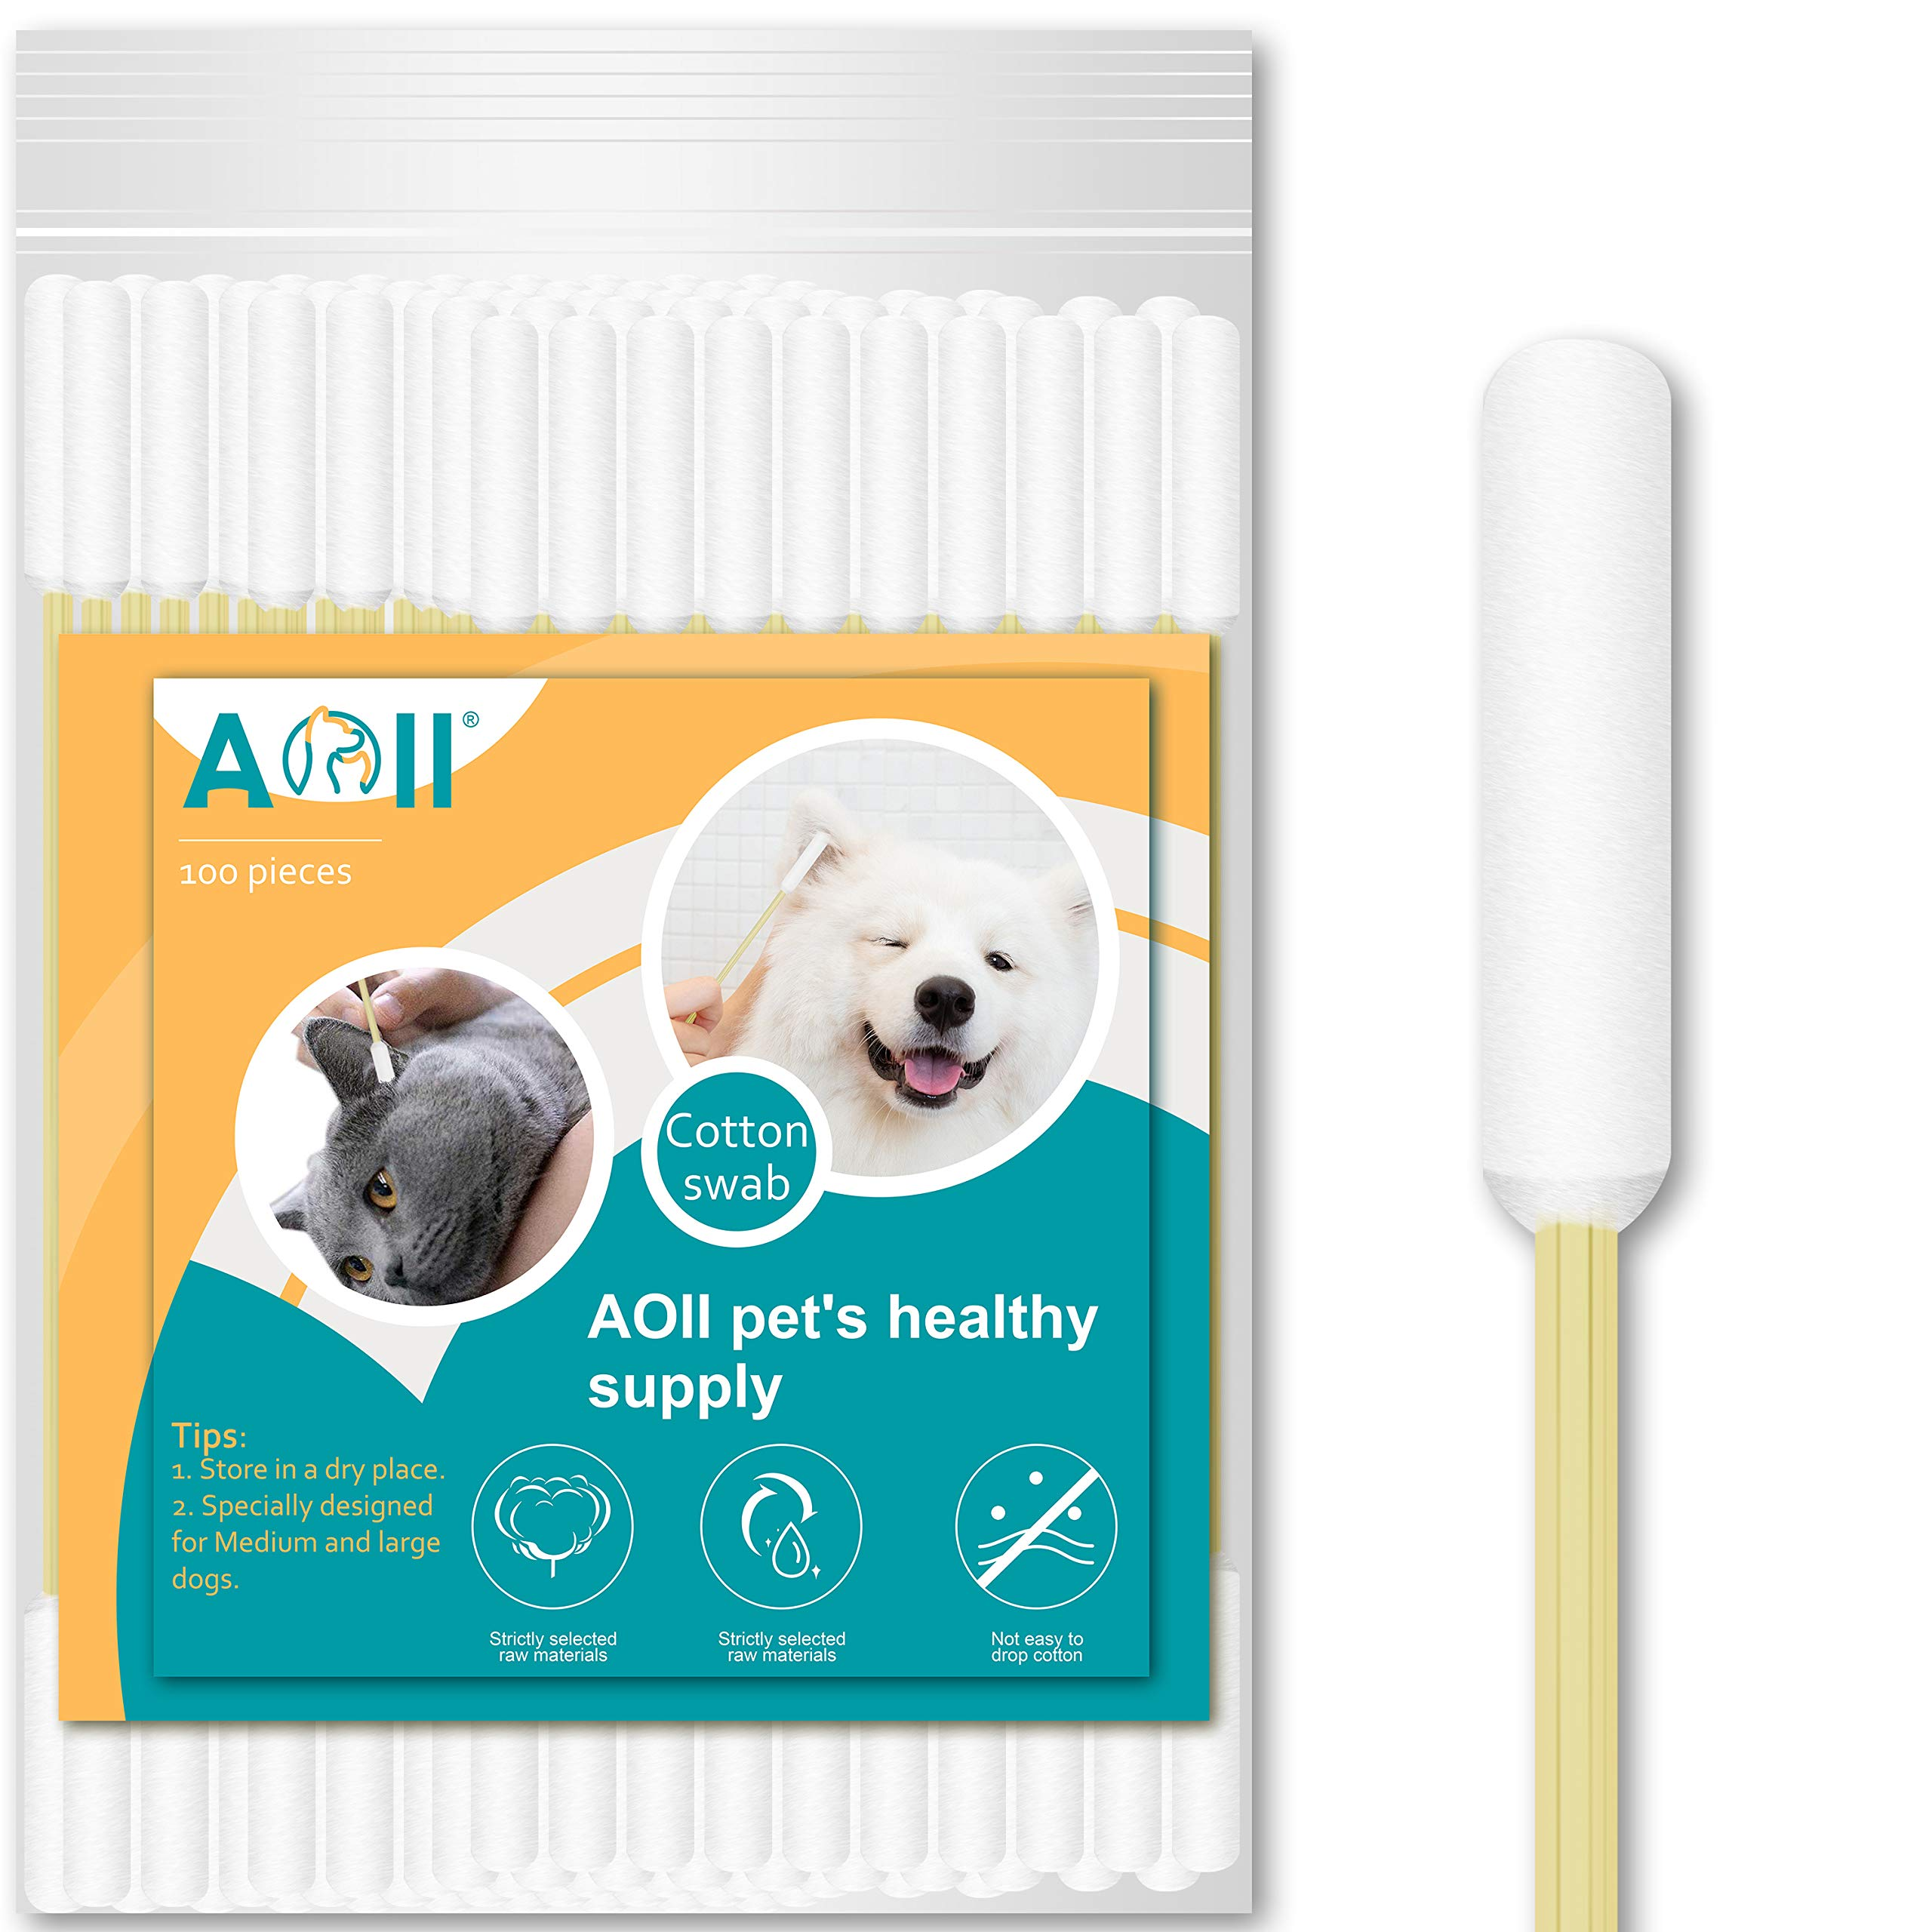 AOII Cotton Buds for Pet, 5.9 Inch Cotton Buds for Large Dog Ears, Ear Cleaner for Medium Dog and Cat, Lengthen Cotton Swabs for Cleaning Dogs Ears Make up Tool Household Cleaning swabs (100 Count)